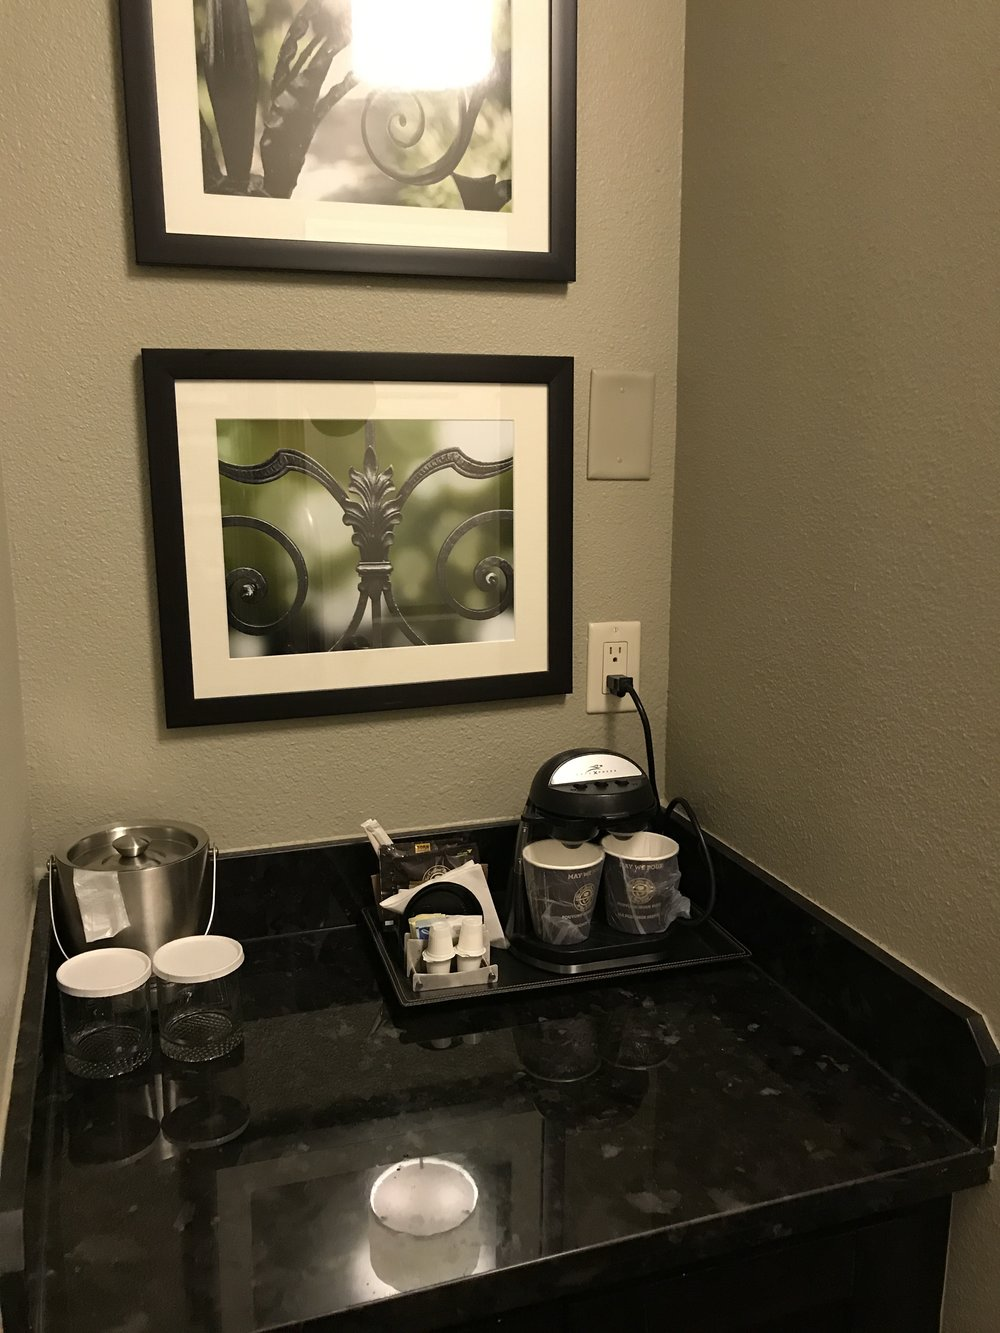 Coffee nook which included room safe and mini-refrigerator